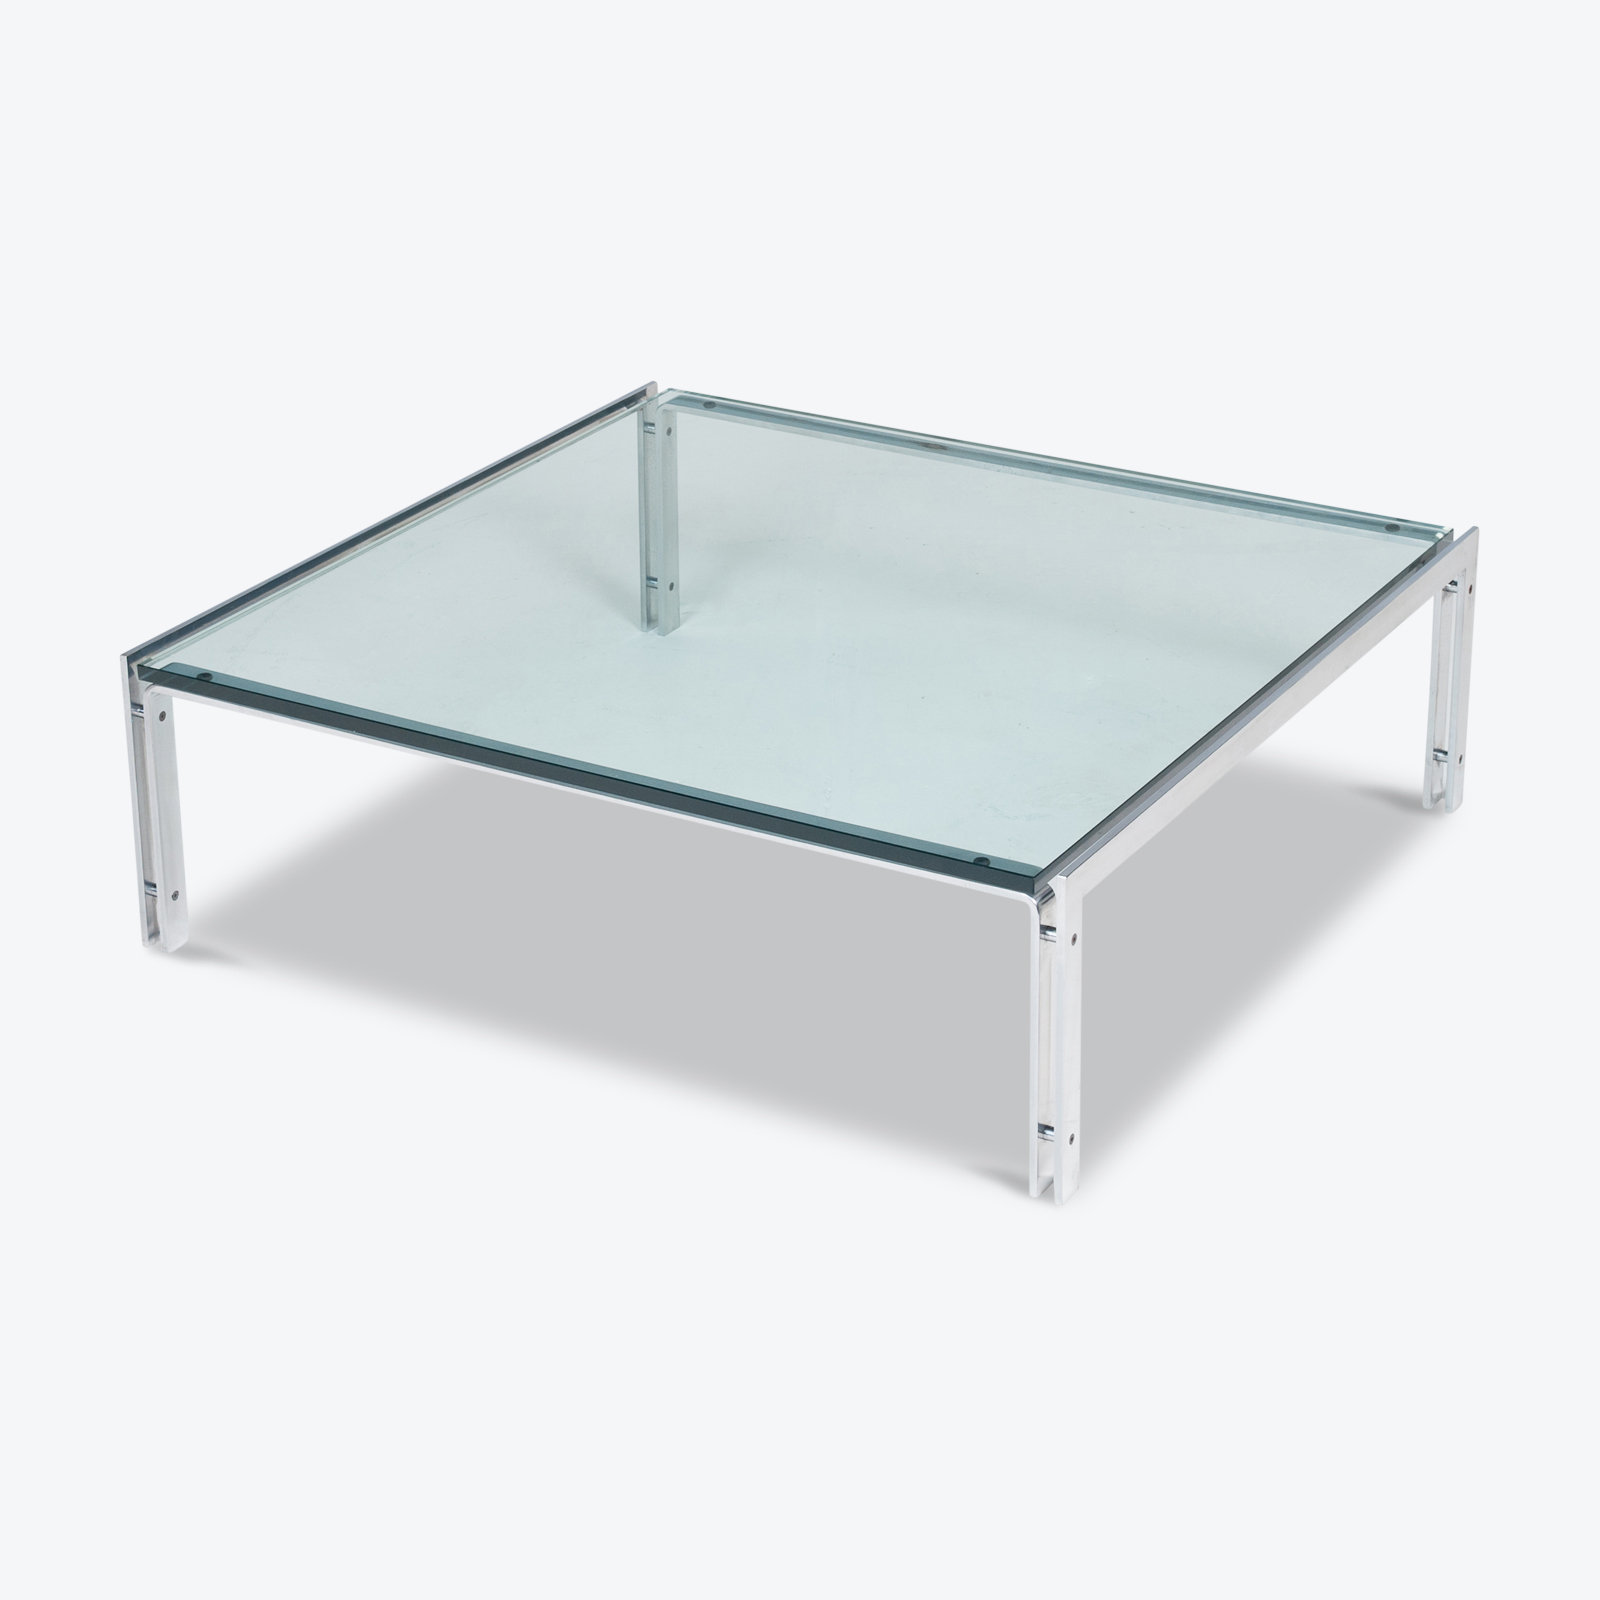 Coffee Table By Metaform In Glass And Chrome, 1970s, The Netherlands Hero